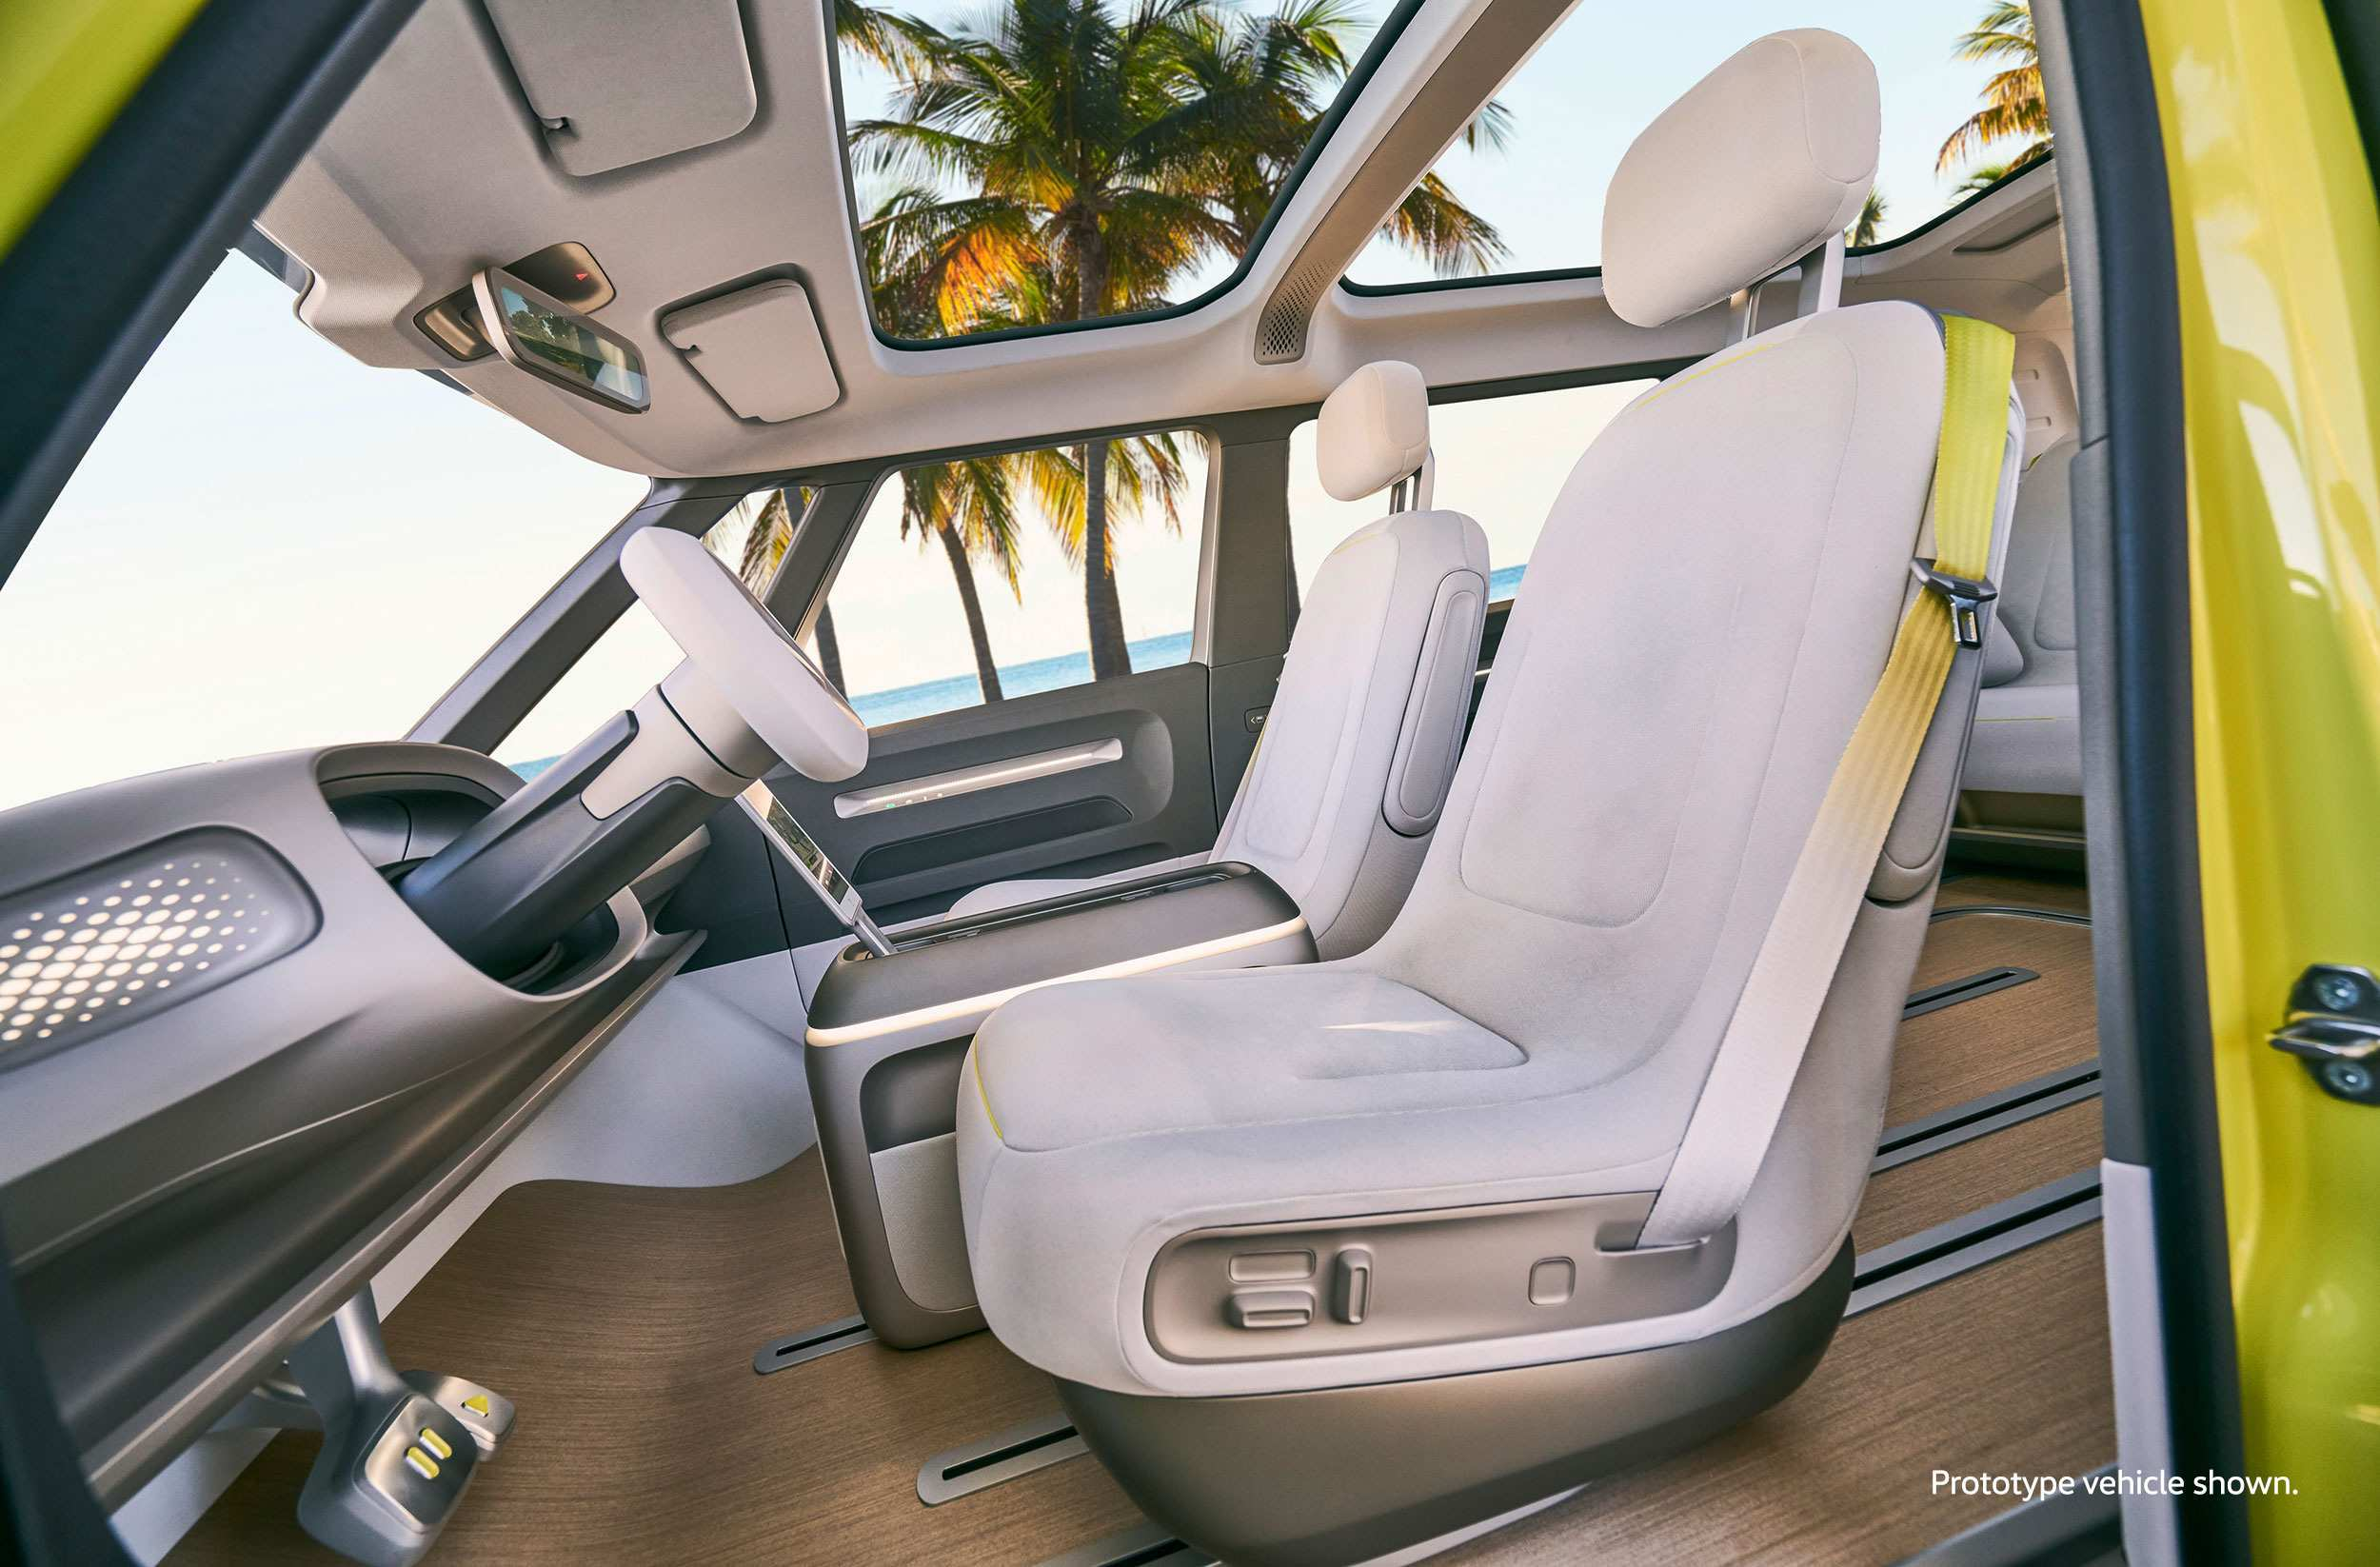 97 Gallery of 2020 Vw Bus Price Images for 2020 Vw Bus Price